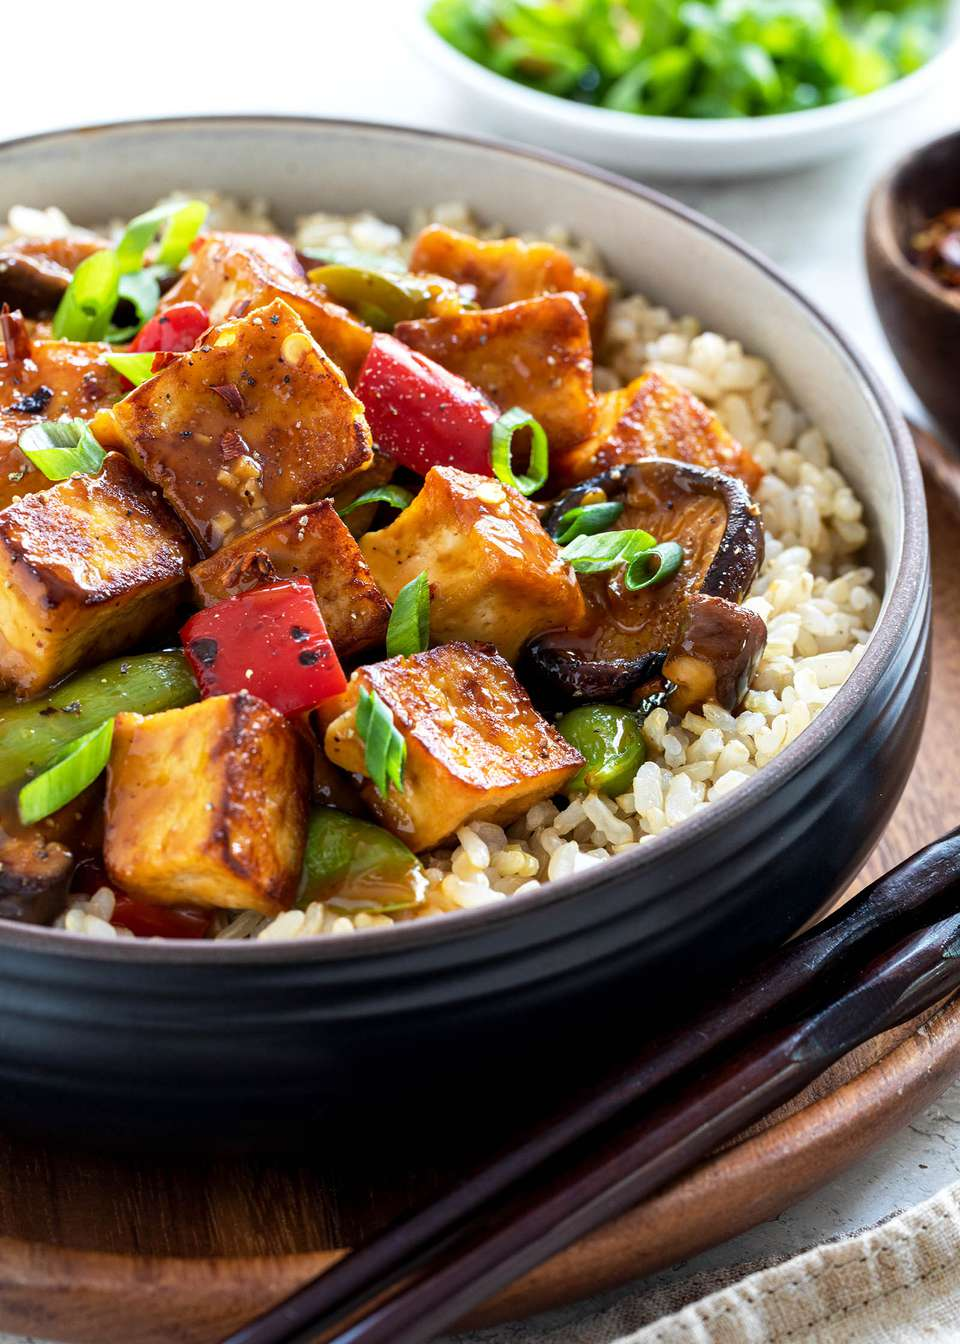 One Pot Vegetarian Stir Fry with tofu served in a bowl.